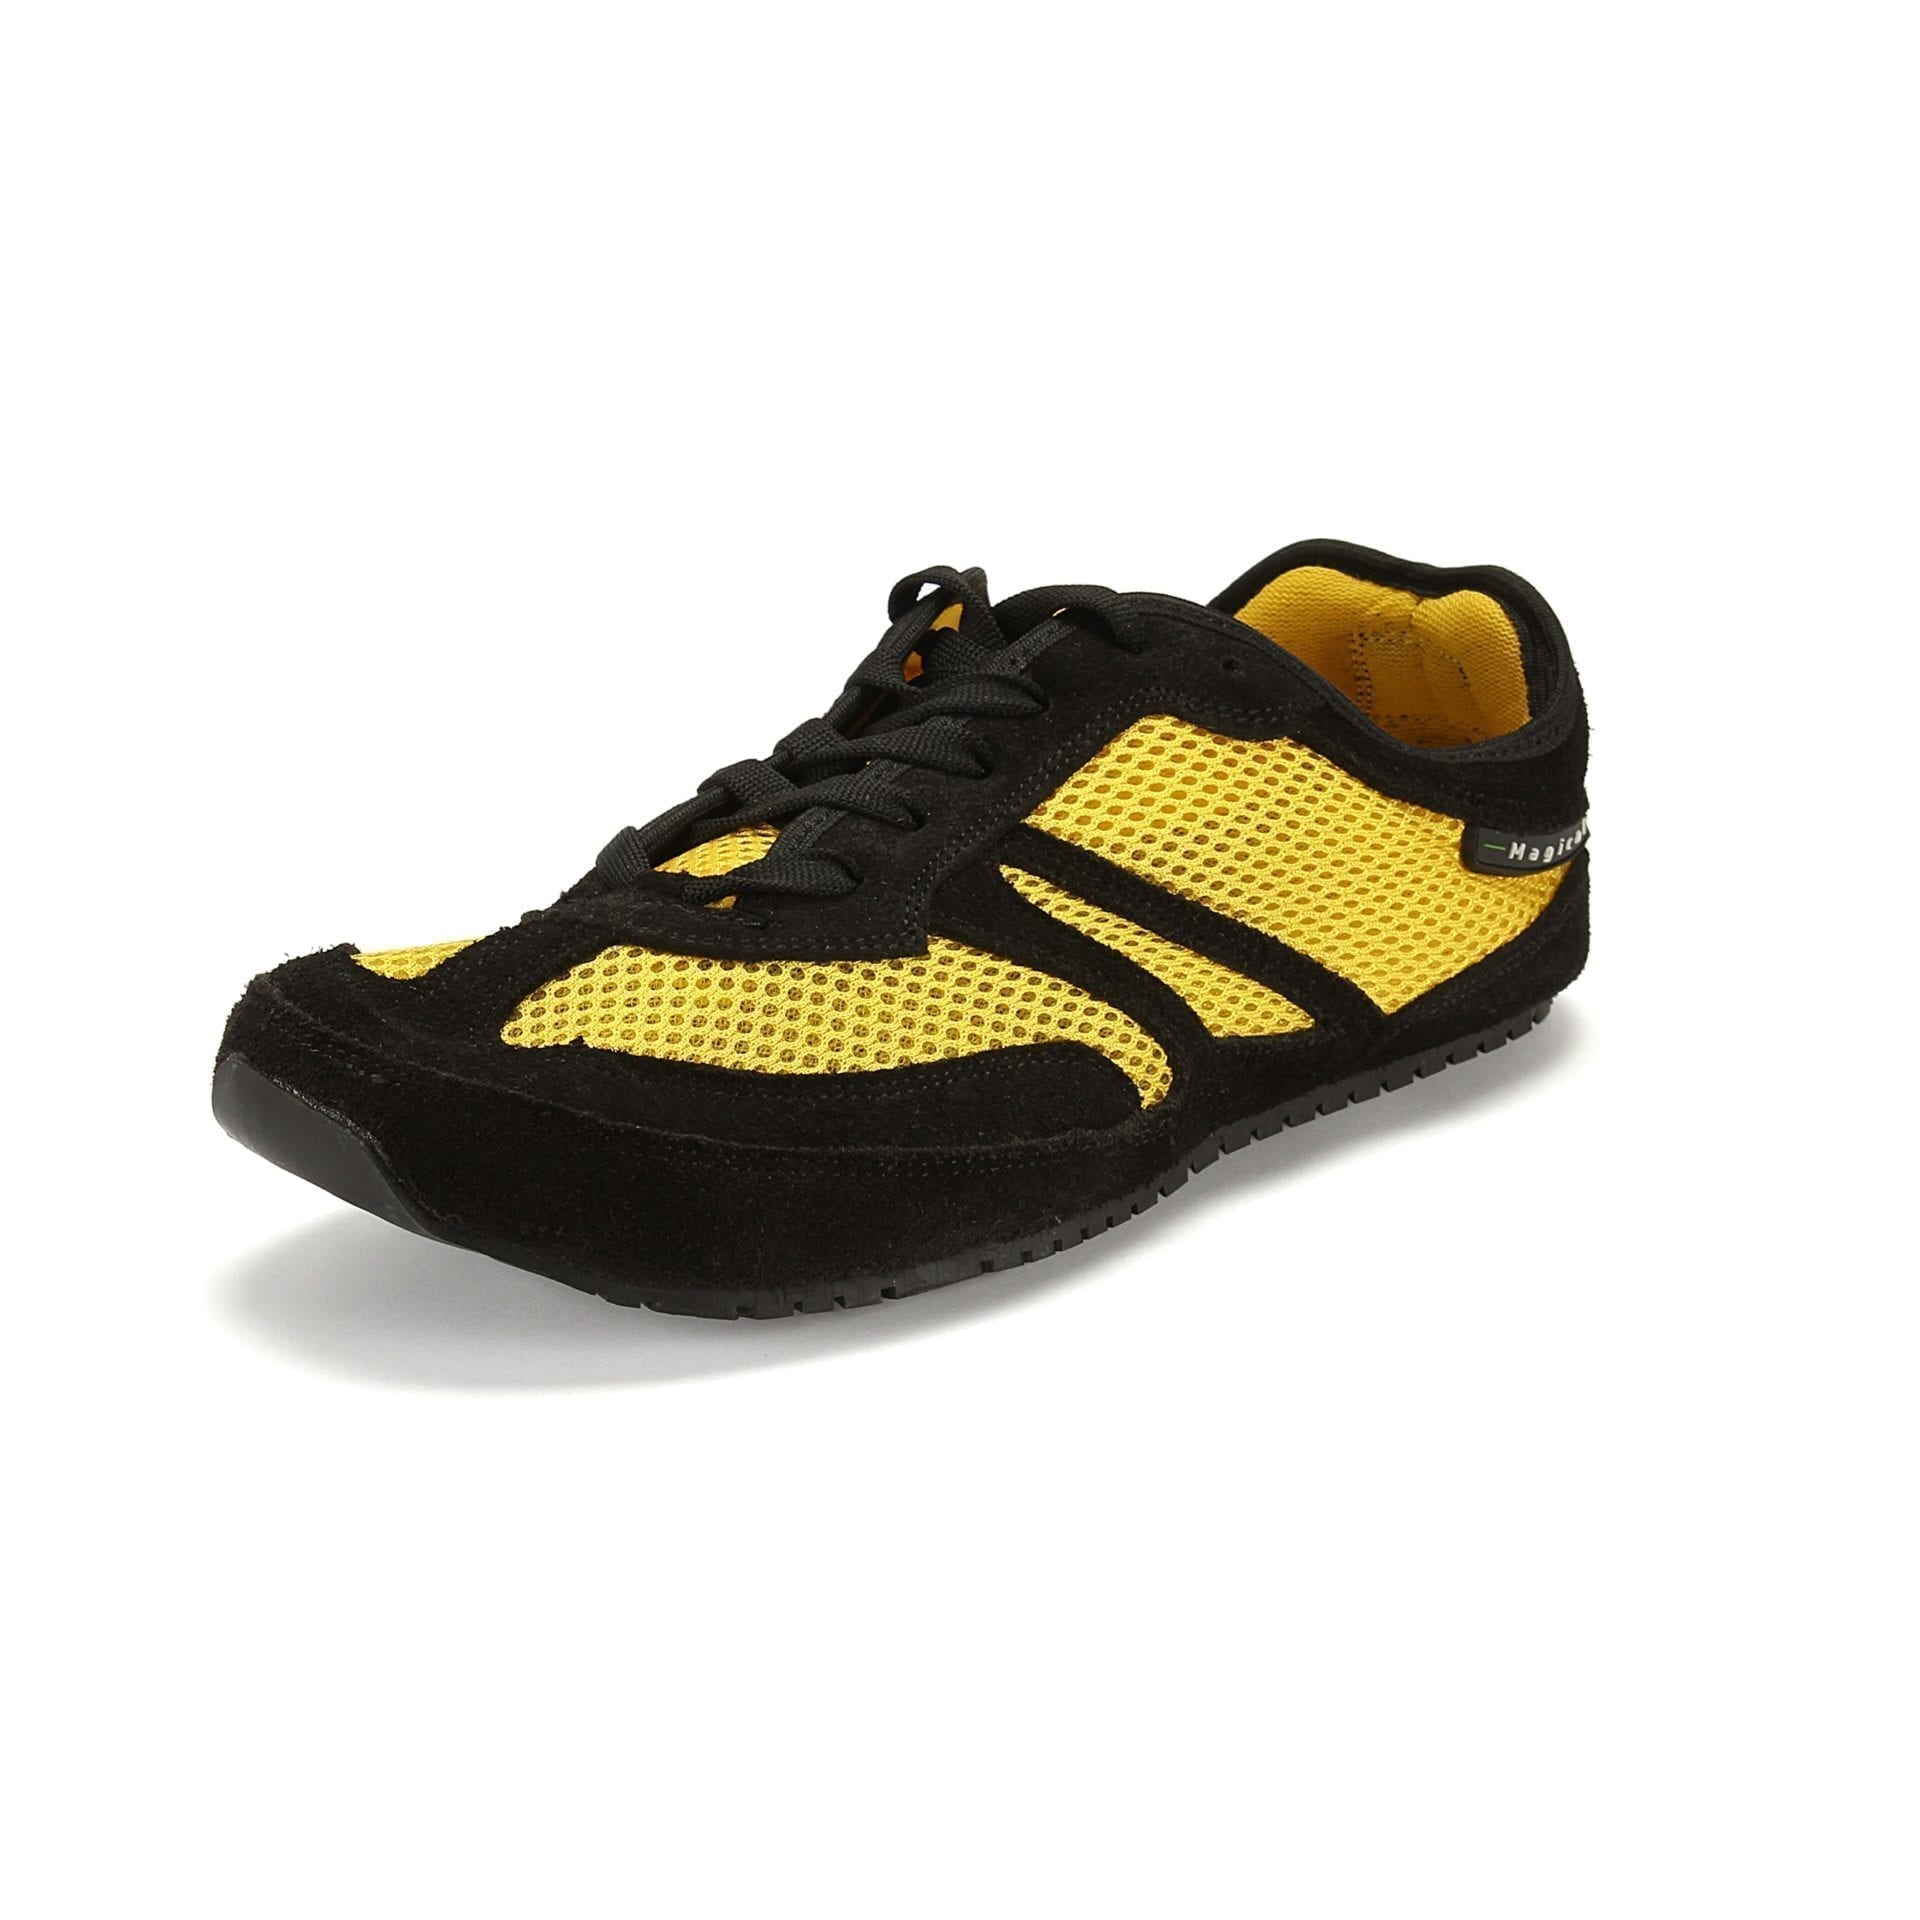 Best Shoe For Walking Barefoot Shoe